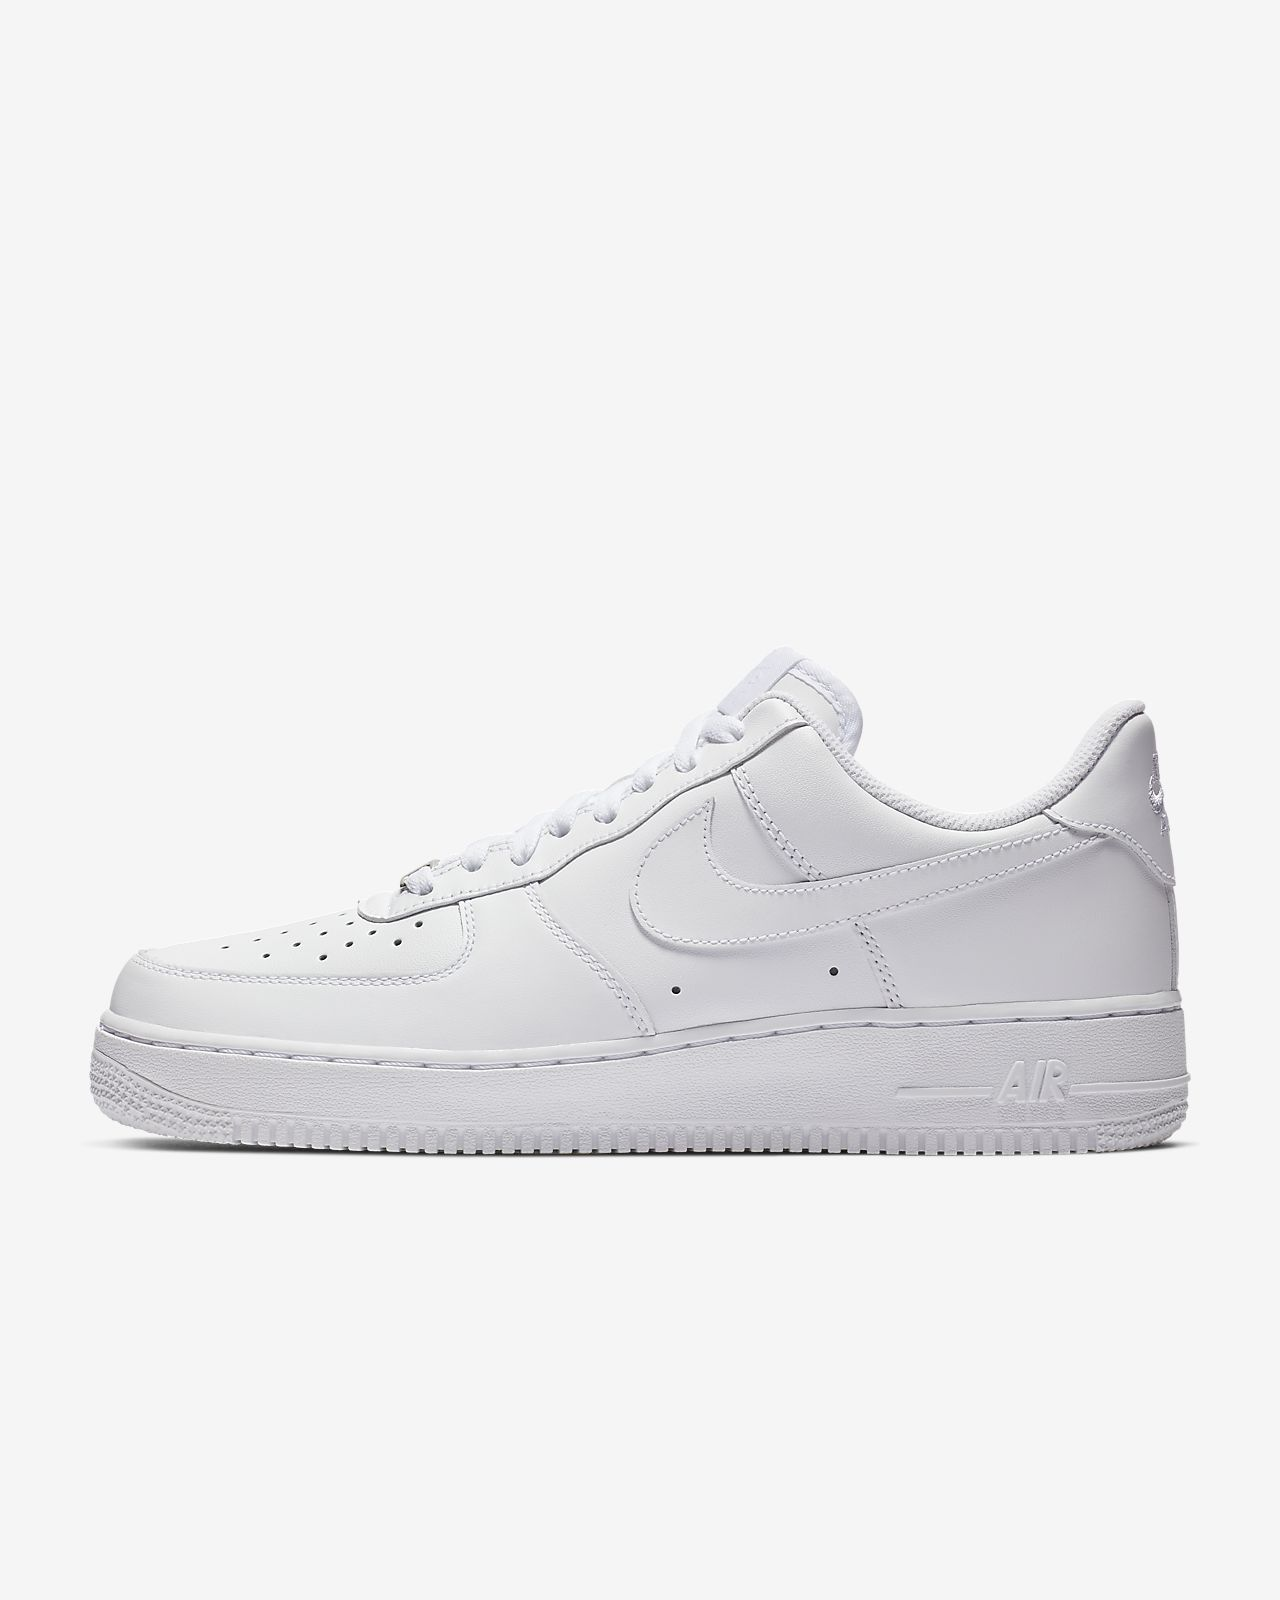 reputable site 0560b 8903f ... Nike Air Force 1  07 Damenschuh